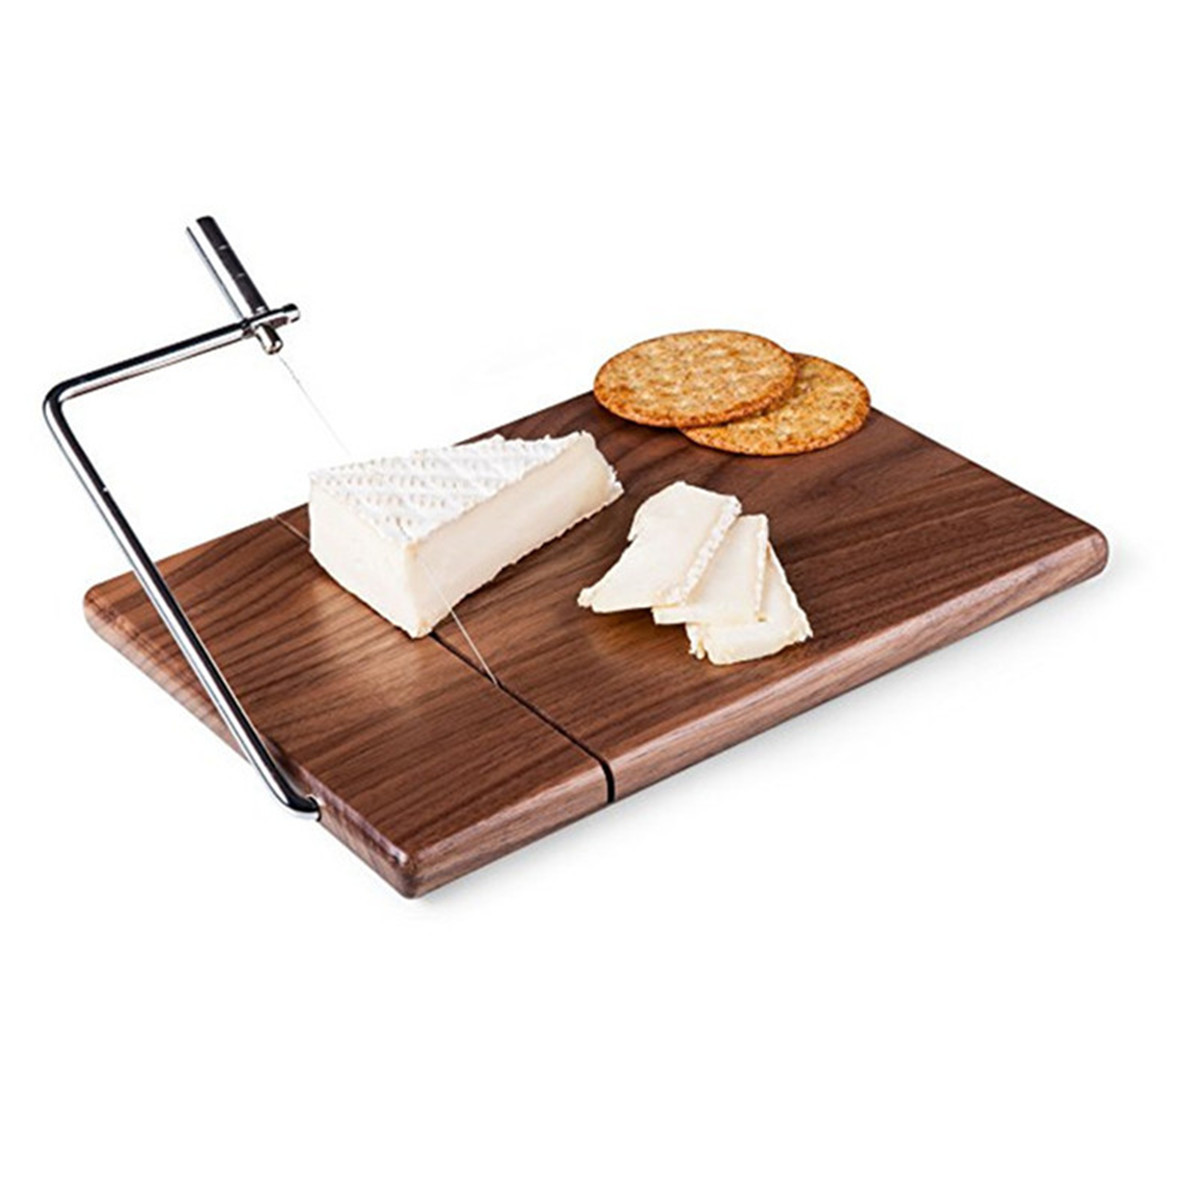 25*17*2cm Walnut wood Cheese Board Wire Cutting Cheese Butter Slice Logs Cheese Cutter Table Kitchen Cooking Baking Knife Tray